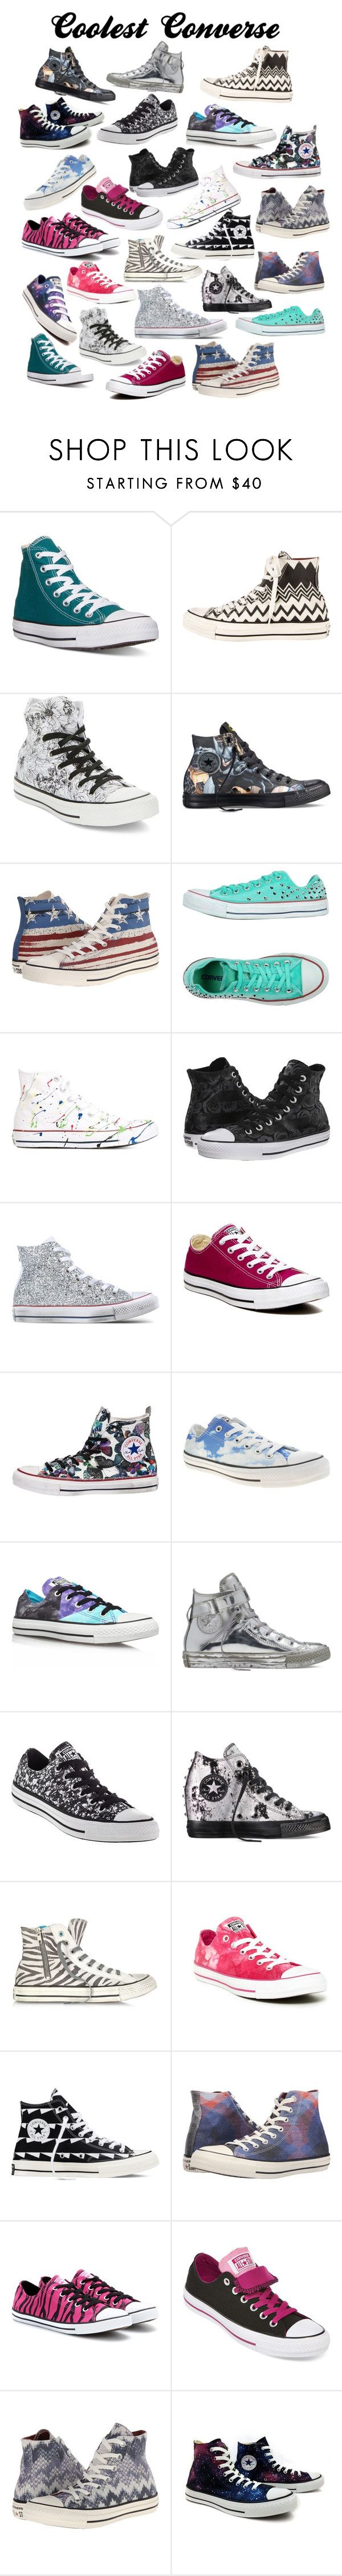 Coolest Converse by kaytaydel27 ❤ liked on Polyvore featuring Converse